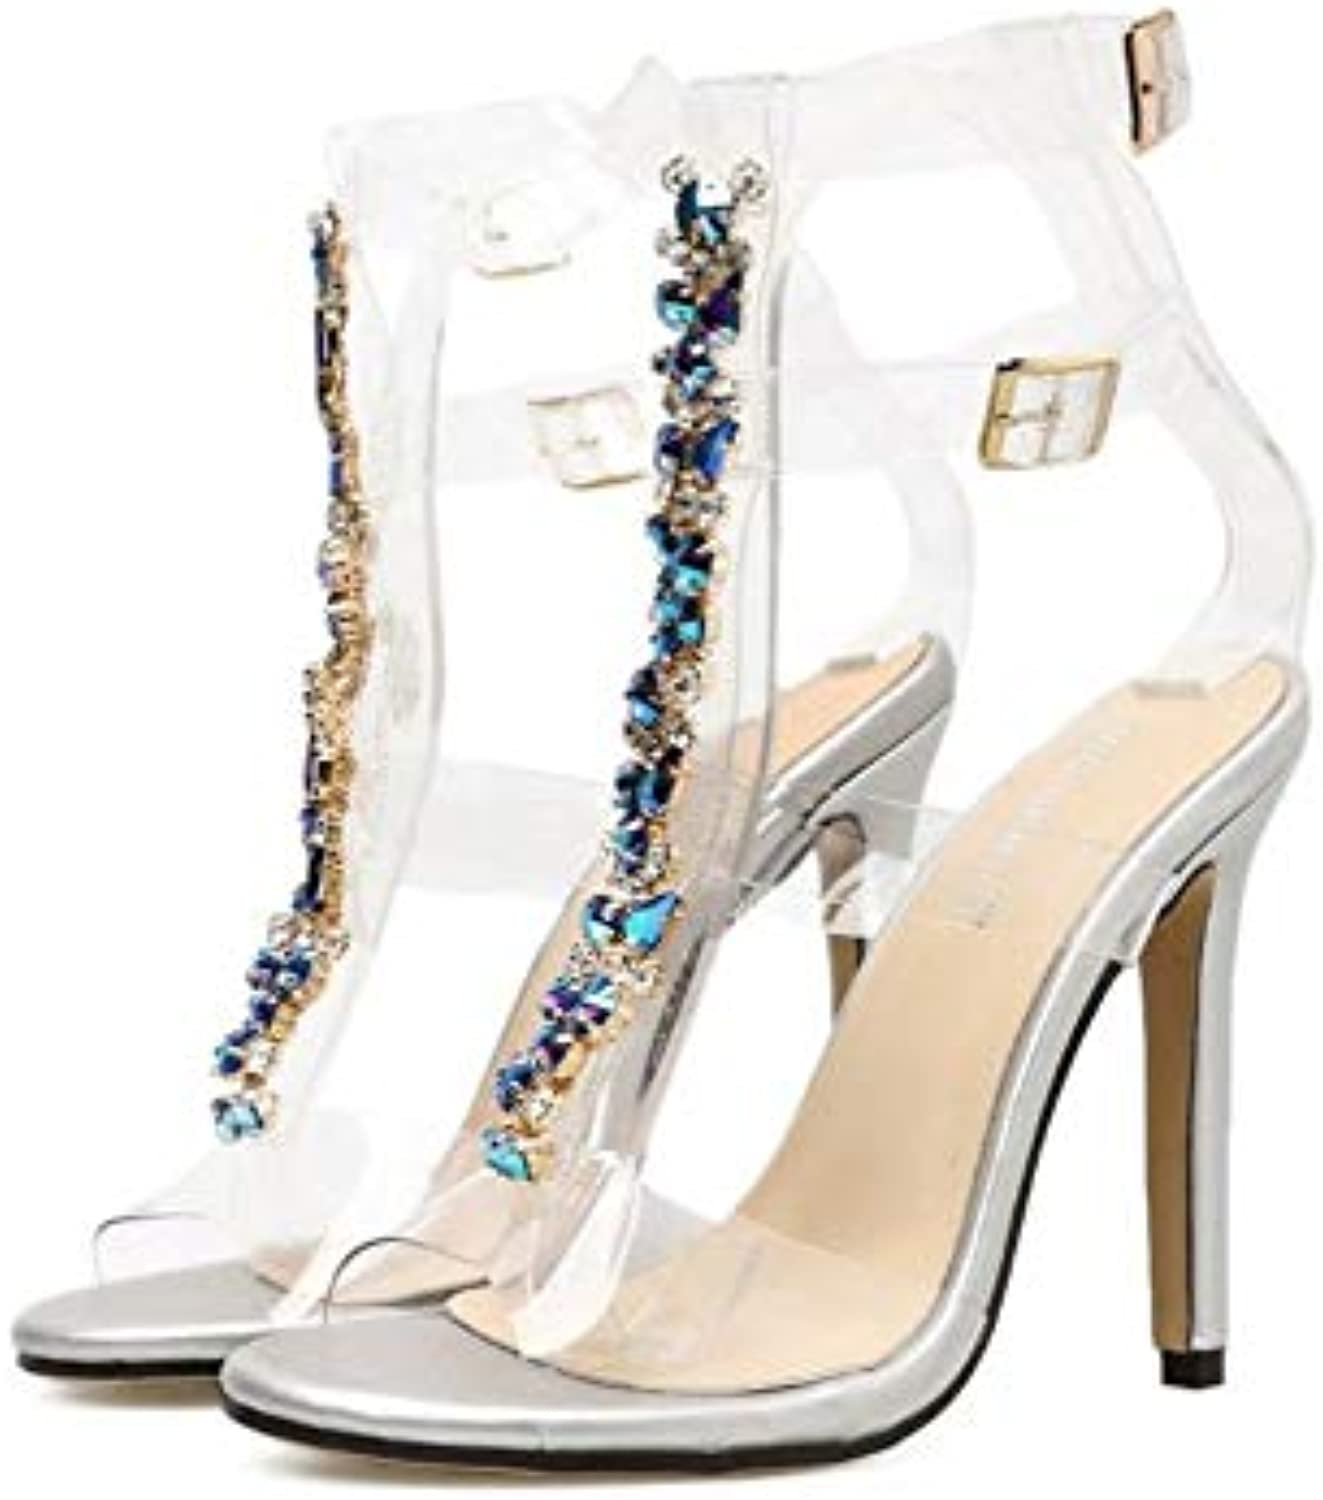 JQfashion Women's High-Heeled shoes Sexy Transparent High-Heeled Sandals Coloured Diamond Crystal shoes Rome